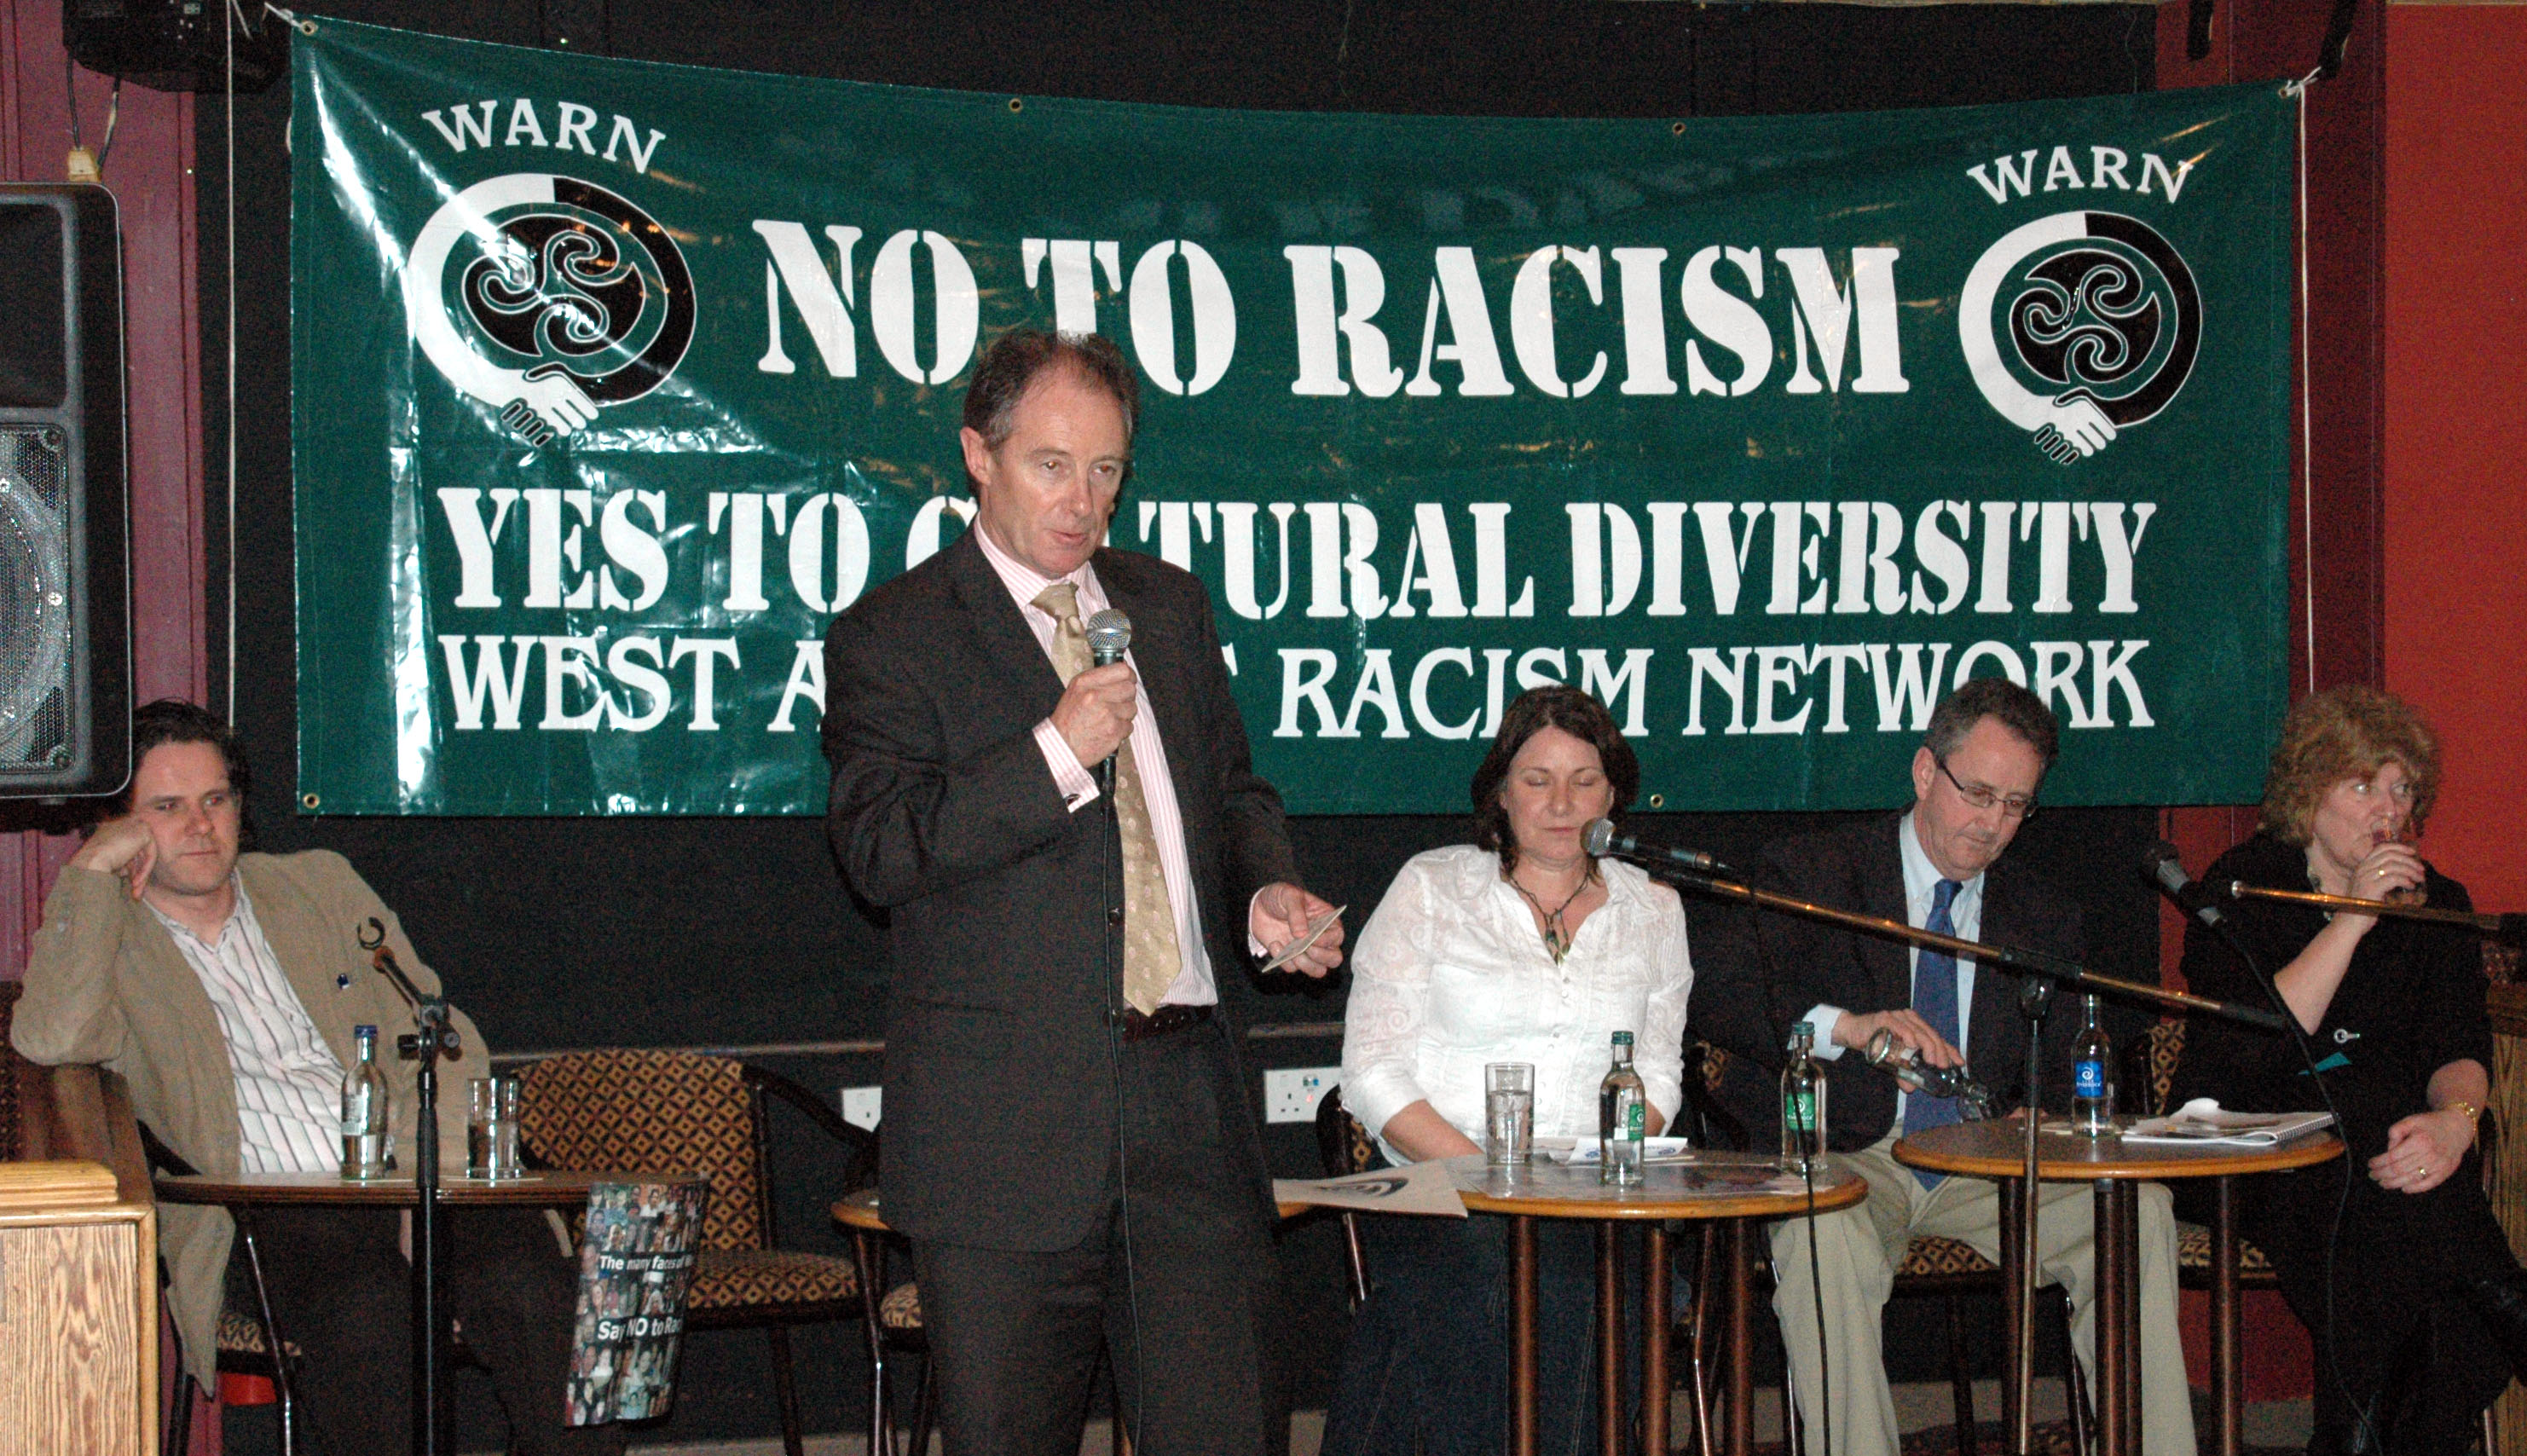 brian-kerr-speaking-at-launch-of-anti-raacism-pubs-and-clubs-initiative-march-2006